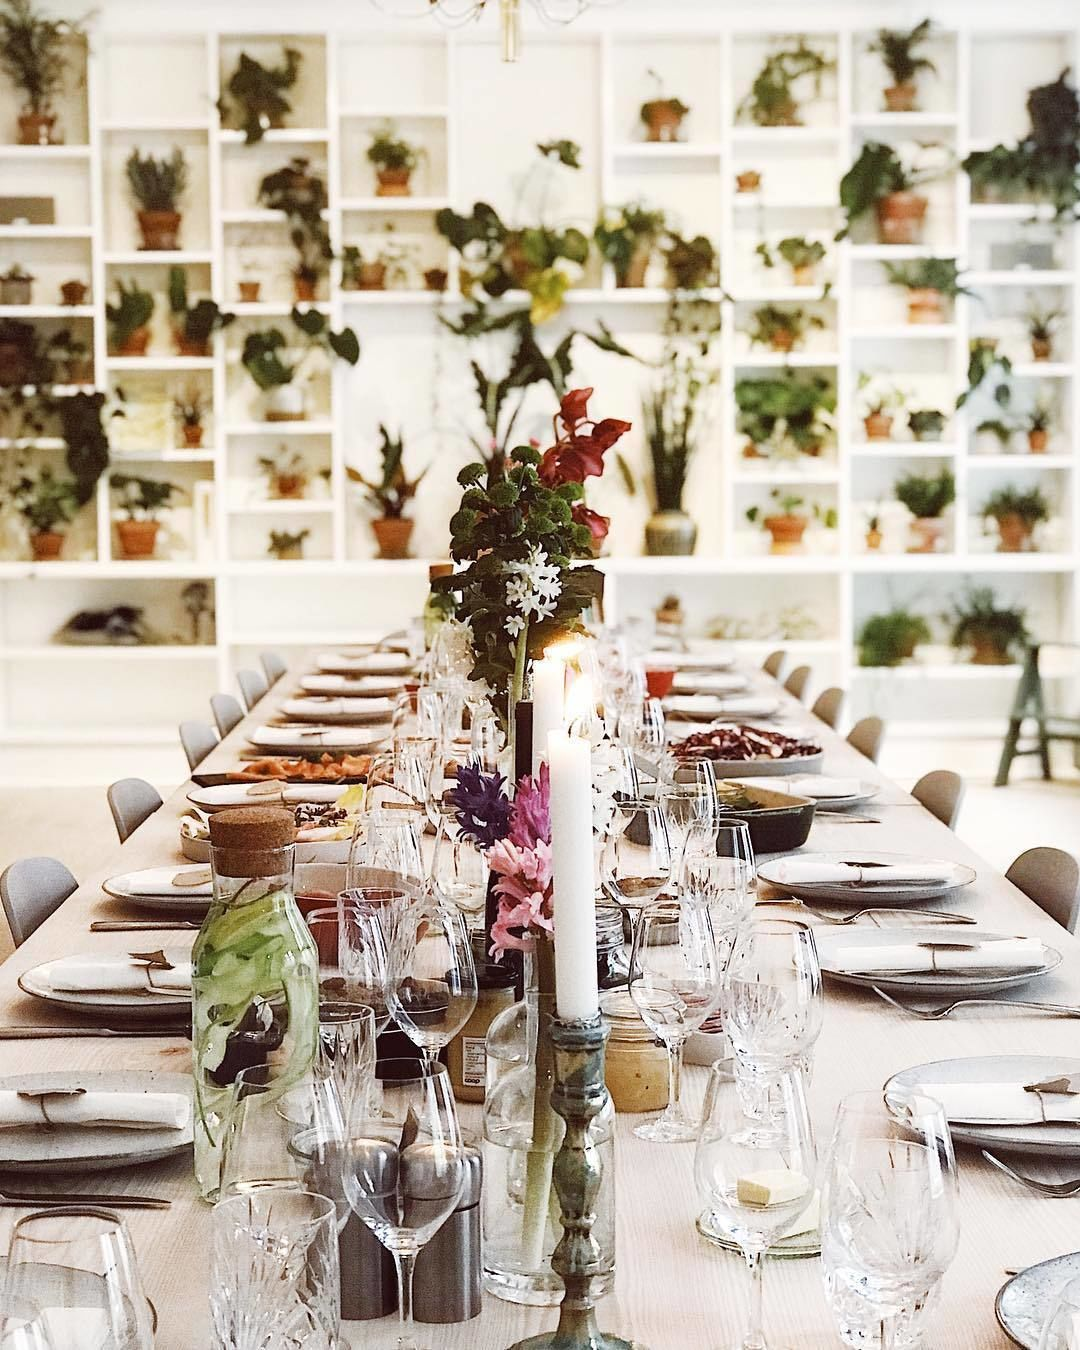 Place settings in a nordic cooking class